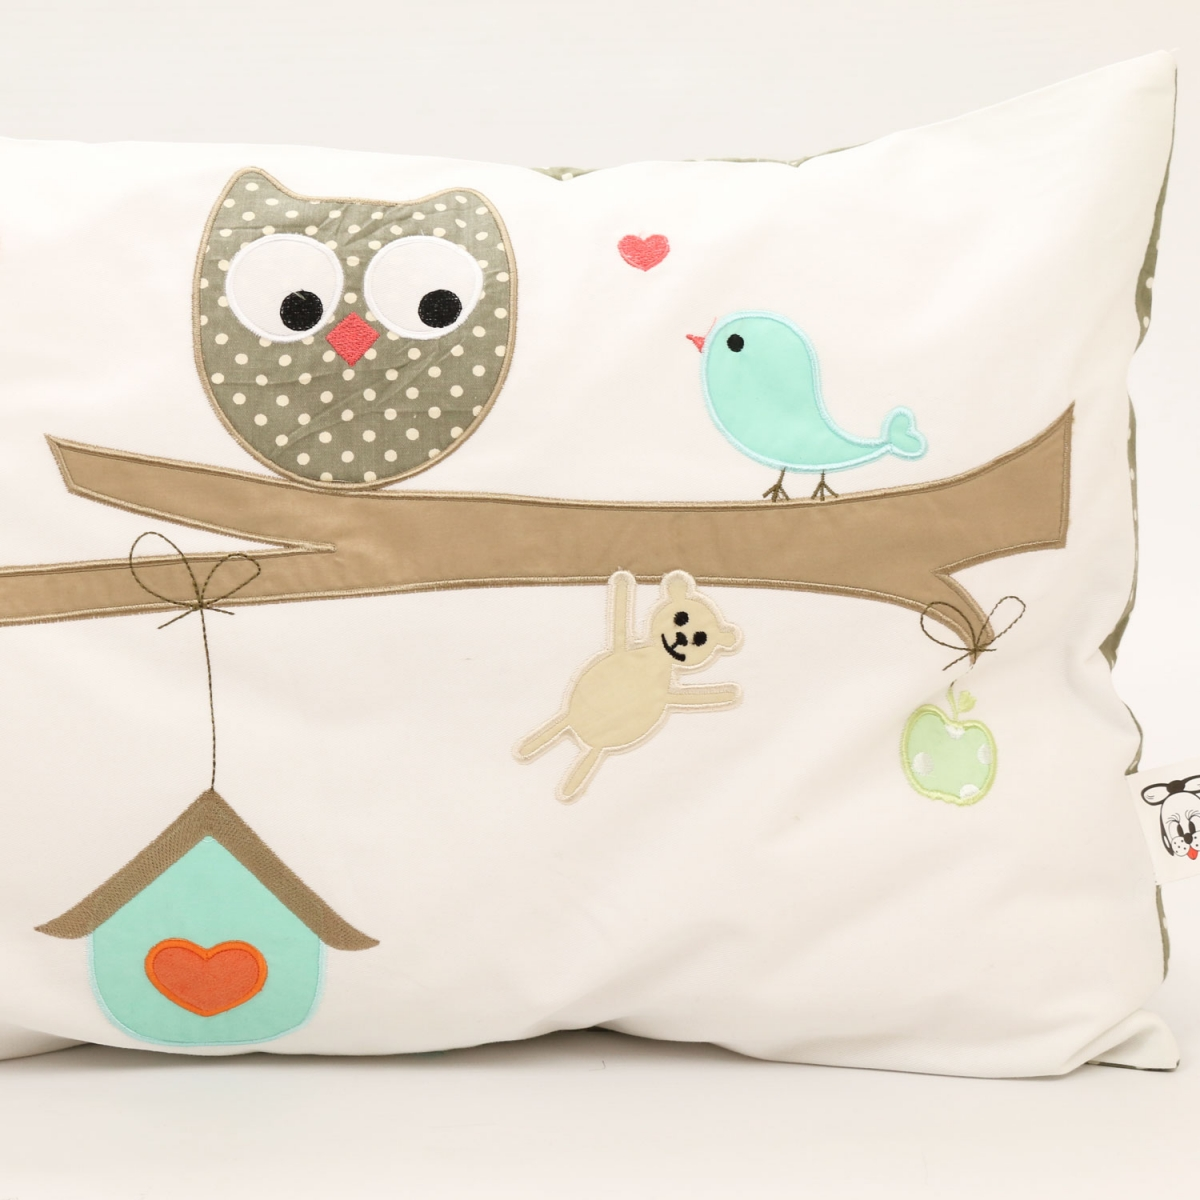 Baby Bettwaesche Mit Namen Baby Lal By Peri Interior For Kids Aus Berlin Eule